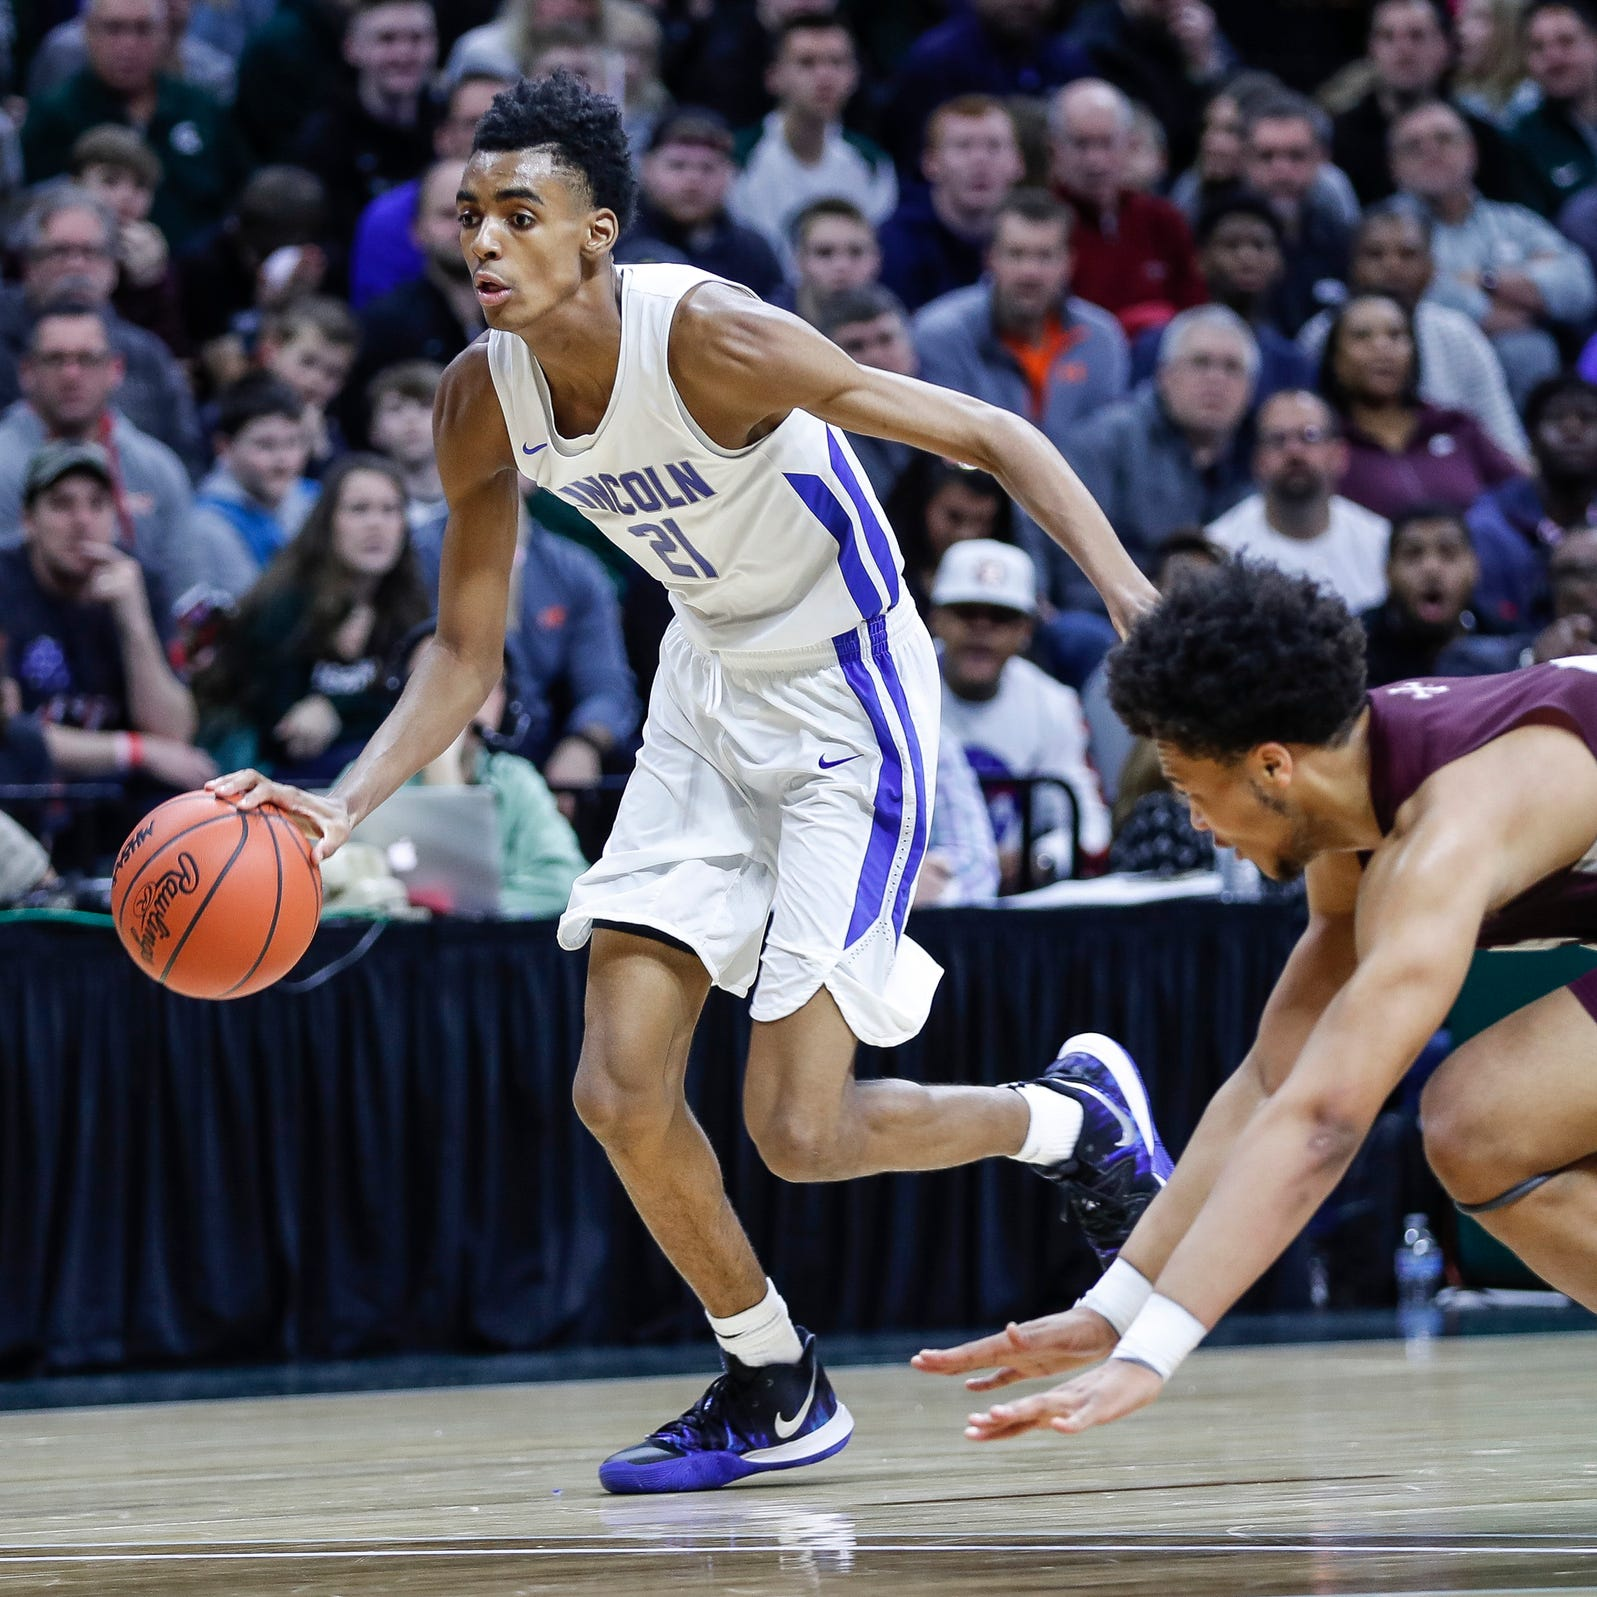 Ypsilanti Lincoln's Emoni Bates dribbles against U-D Jesuit's Daniel Friday during the first half of MHSAA Division 1 final at the Breslin Center in East Lansing, Saturday, March 16, 2019.